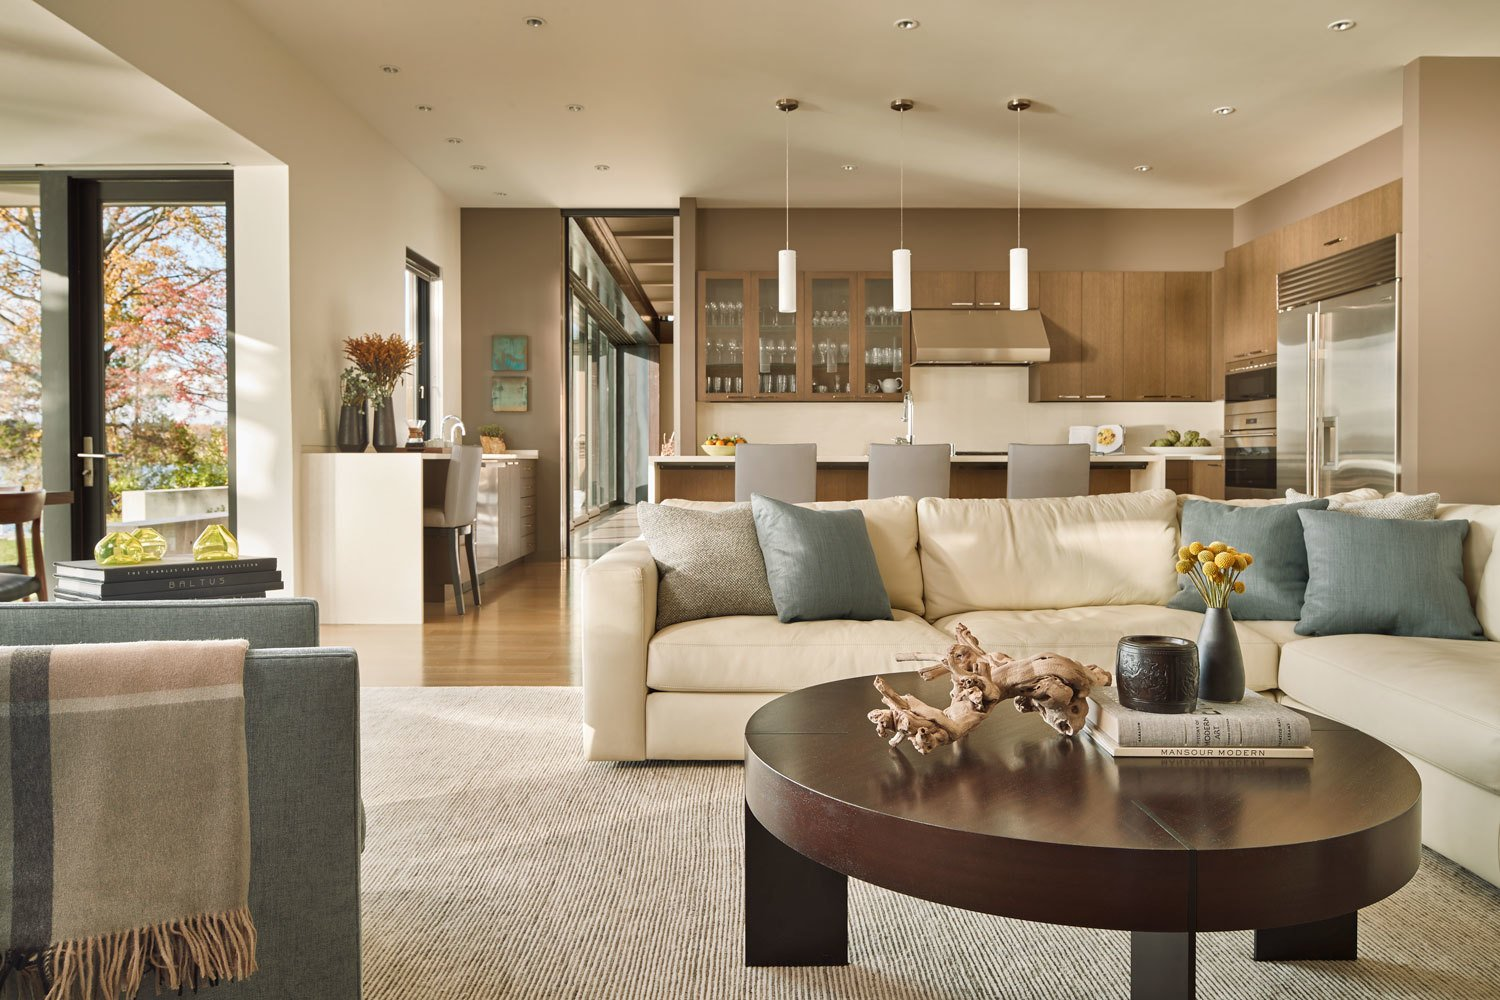 Kitchen, Light Hardwood Floor, Refrigerator, Range Hood, Wood Cabinet, Engineered Quartz Counter, Pendant Lighting, Recessed Lighting, Wall Oven, and Cooktops A large leather sectional grounds the family room  Union Bay Residence by NB Design Group